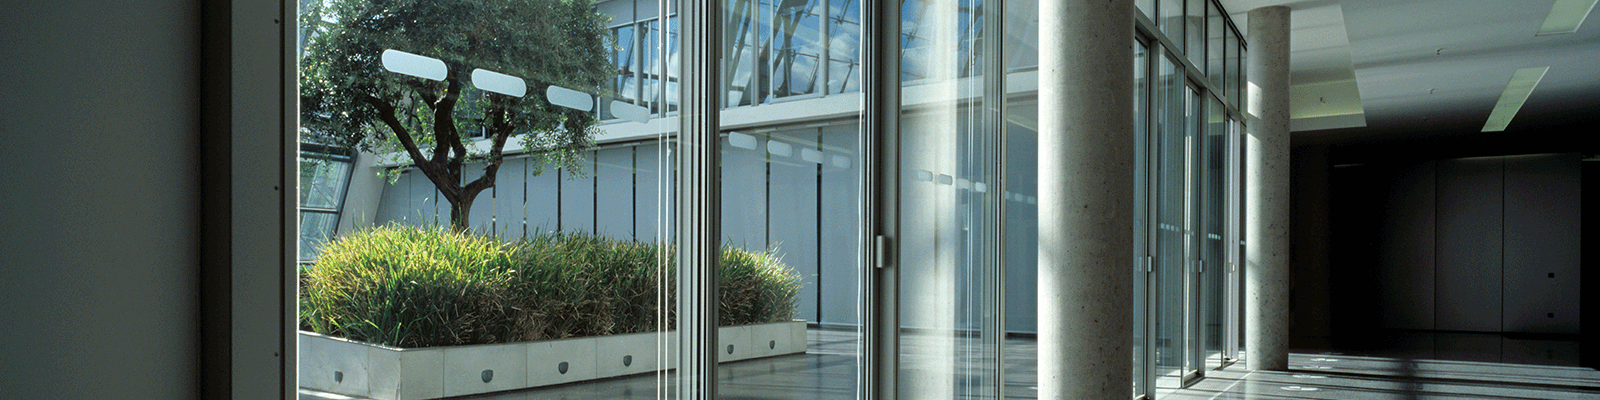 Commercial glazing specialists: installation and replacement